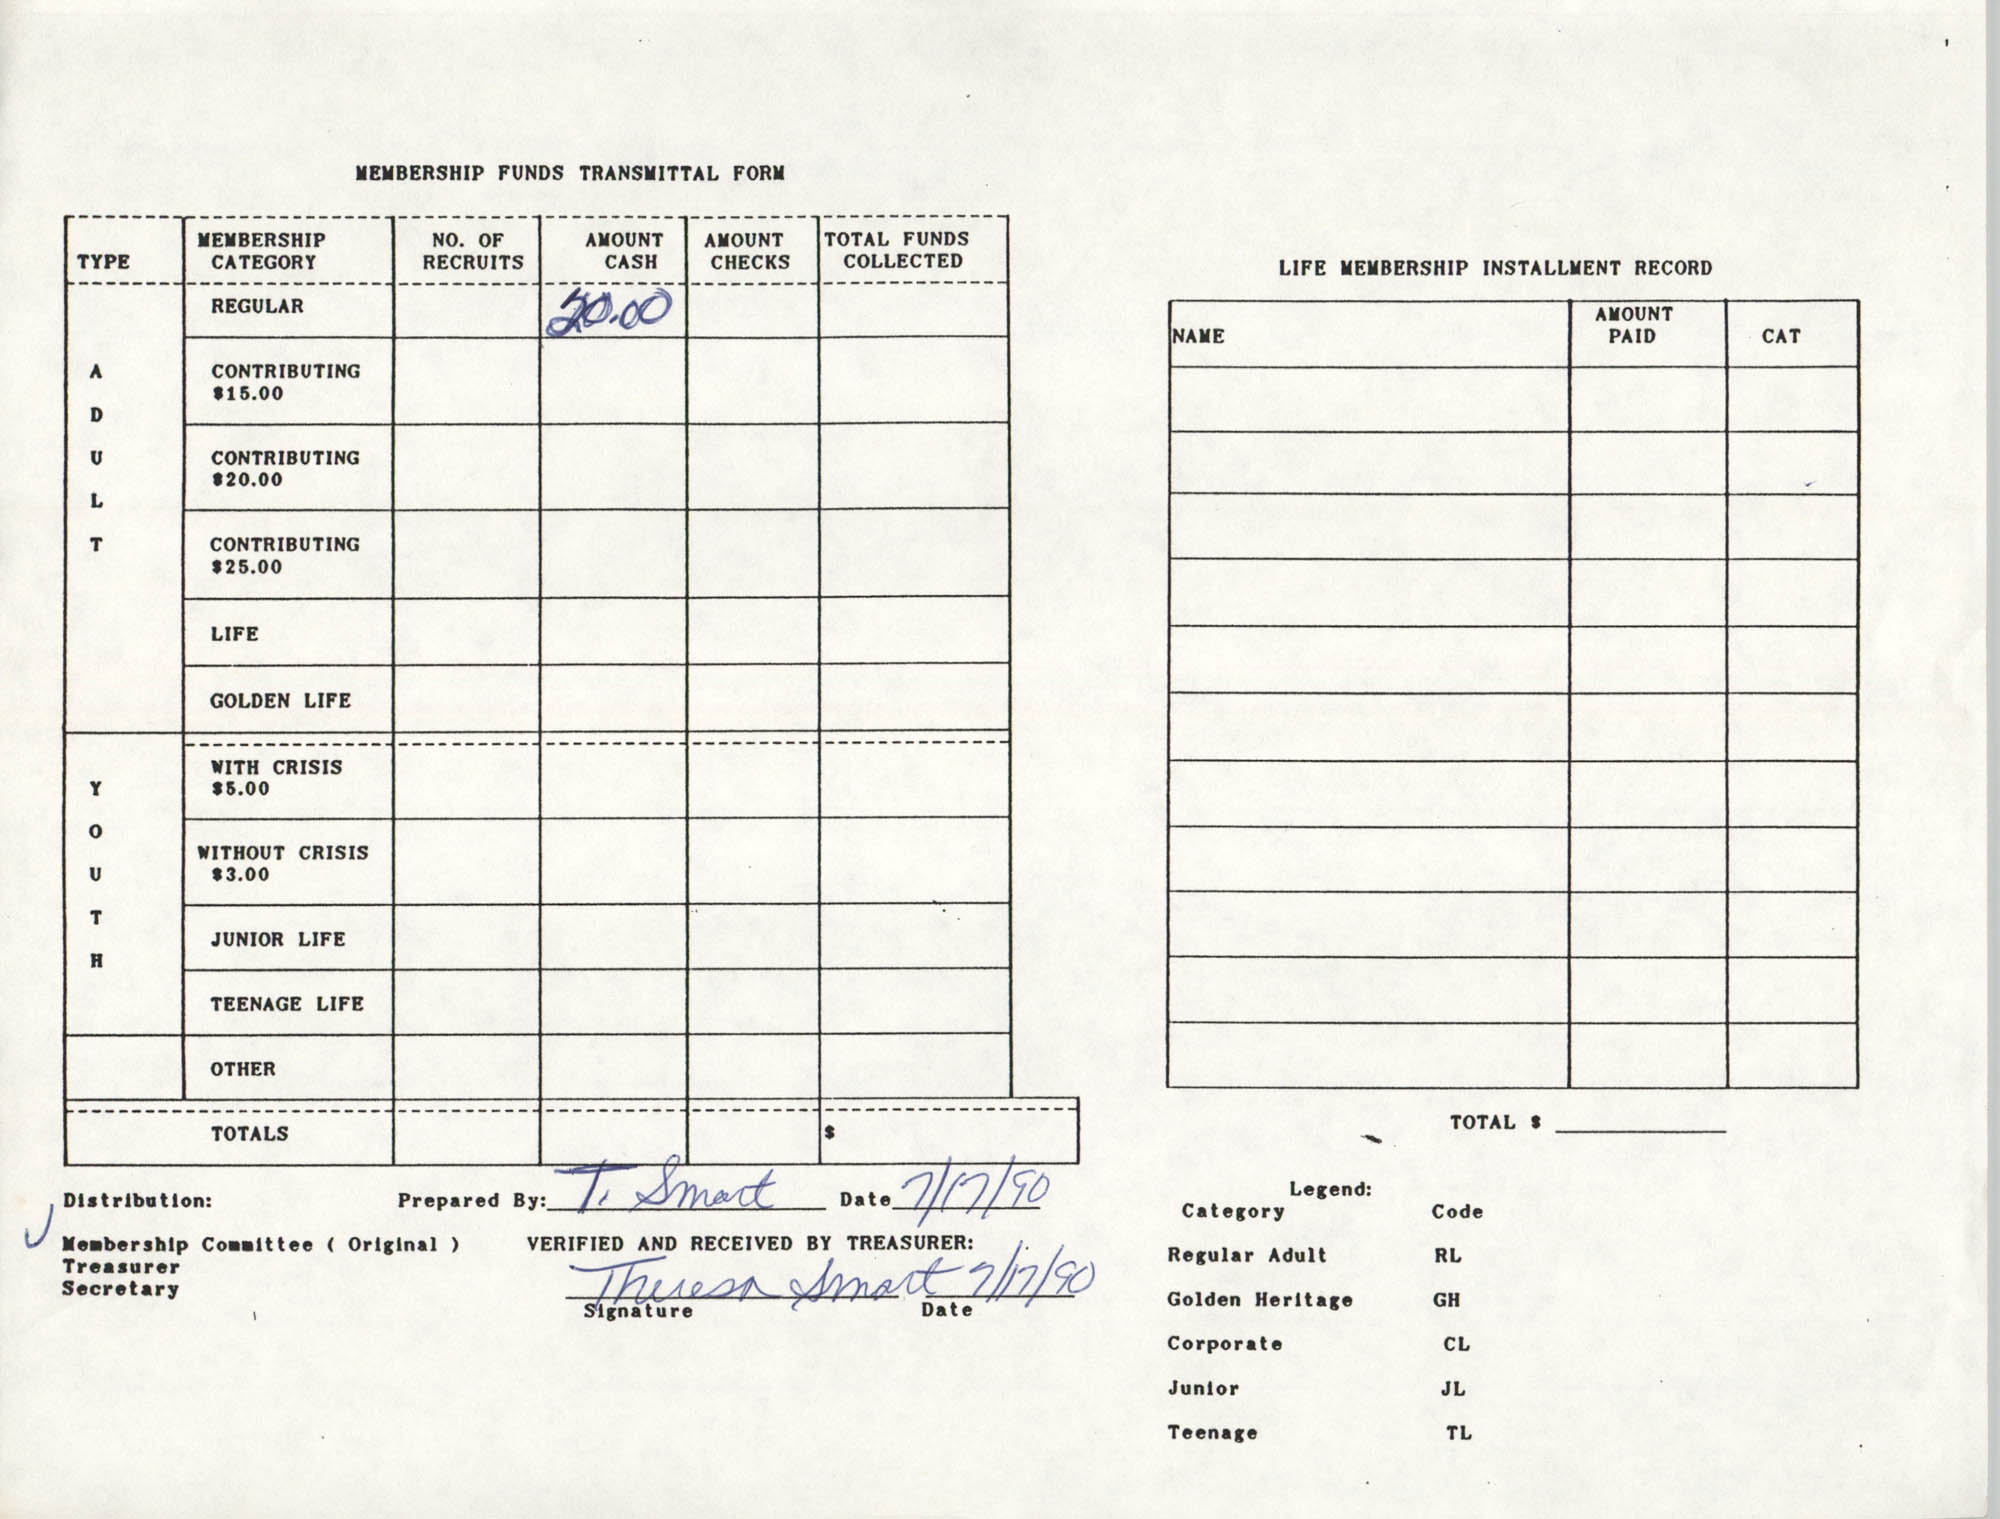 Charleston Branch of the NAACP Funds Transmittal Forms, July 1990, Page 1